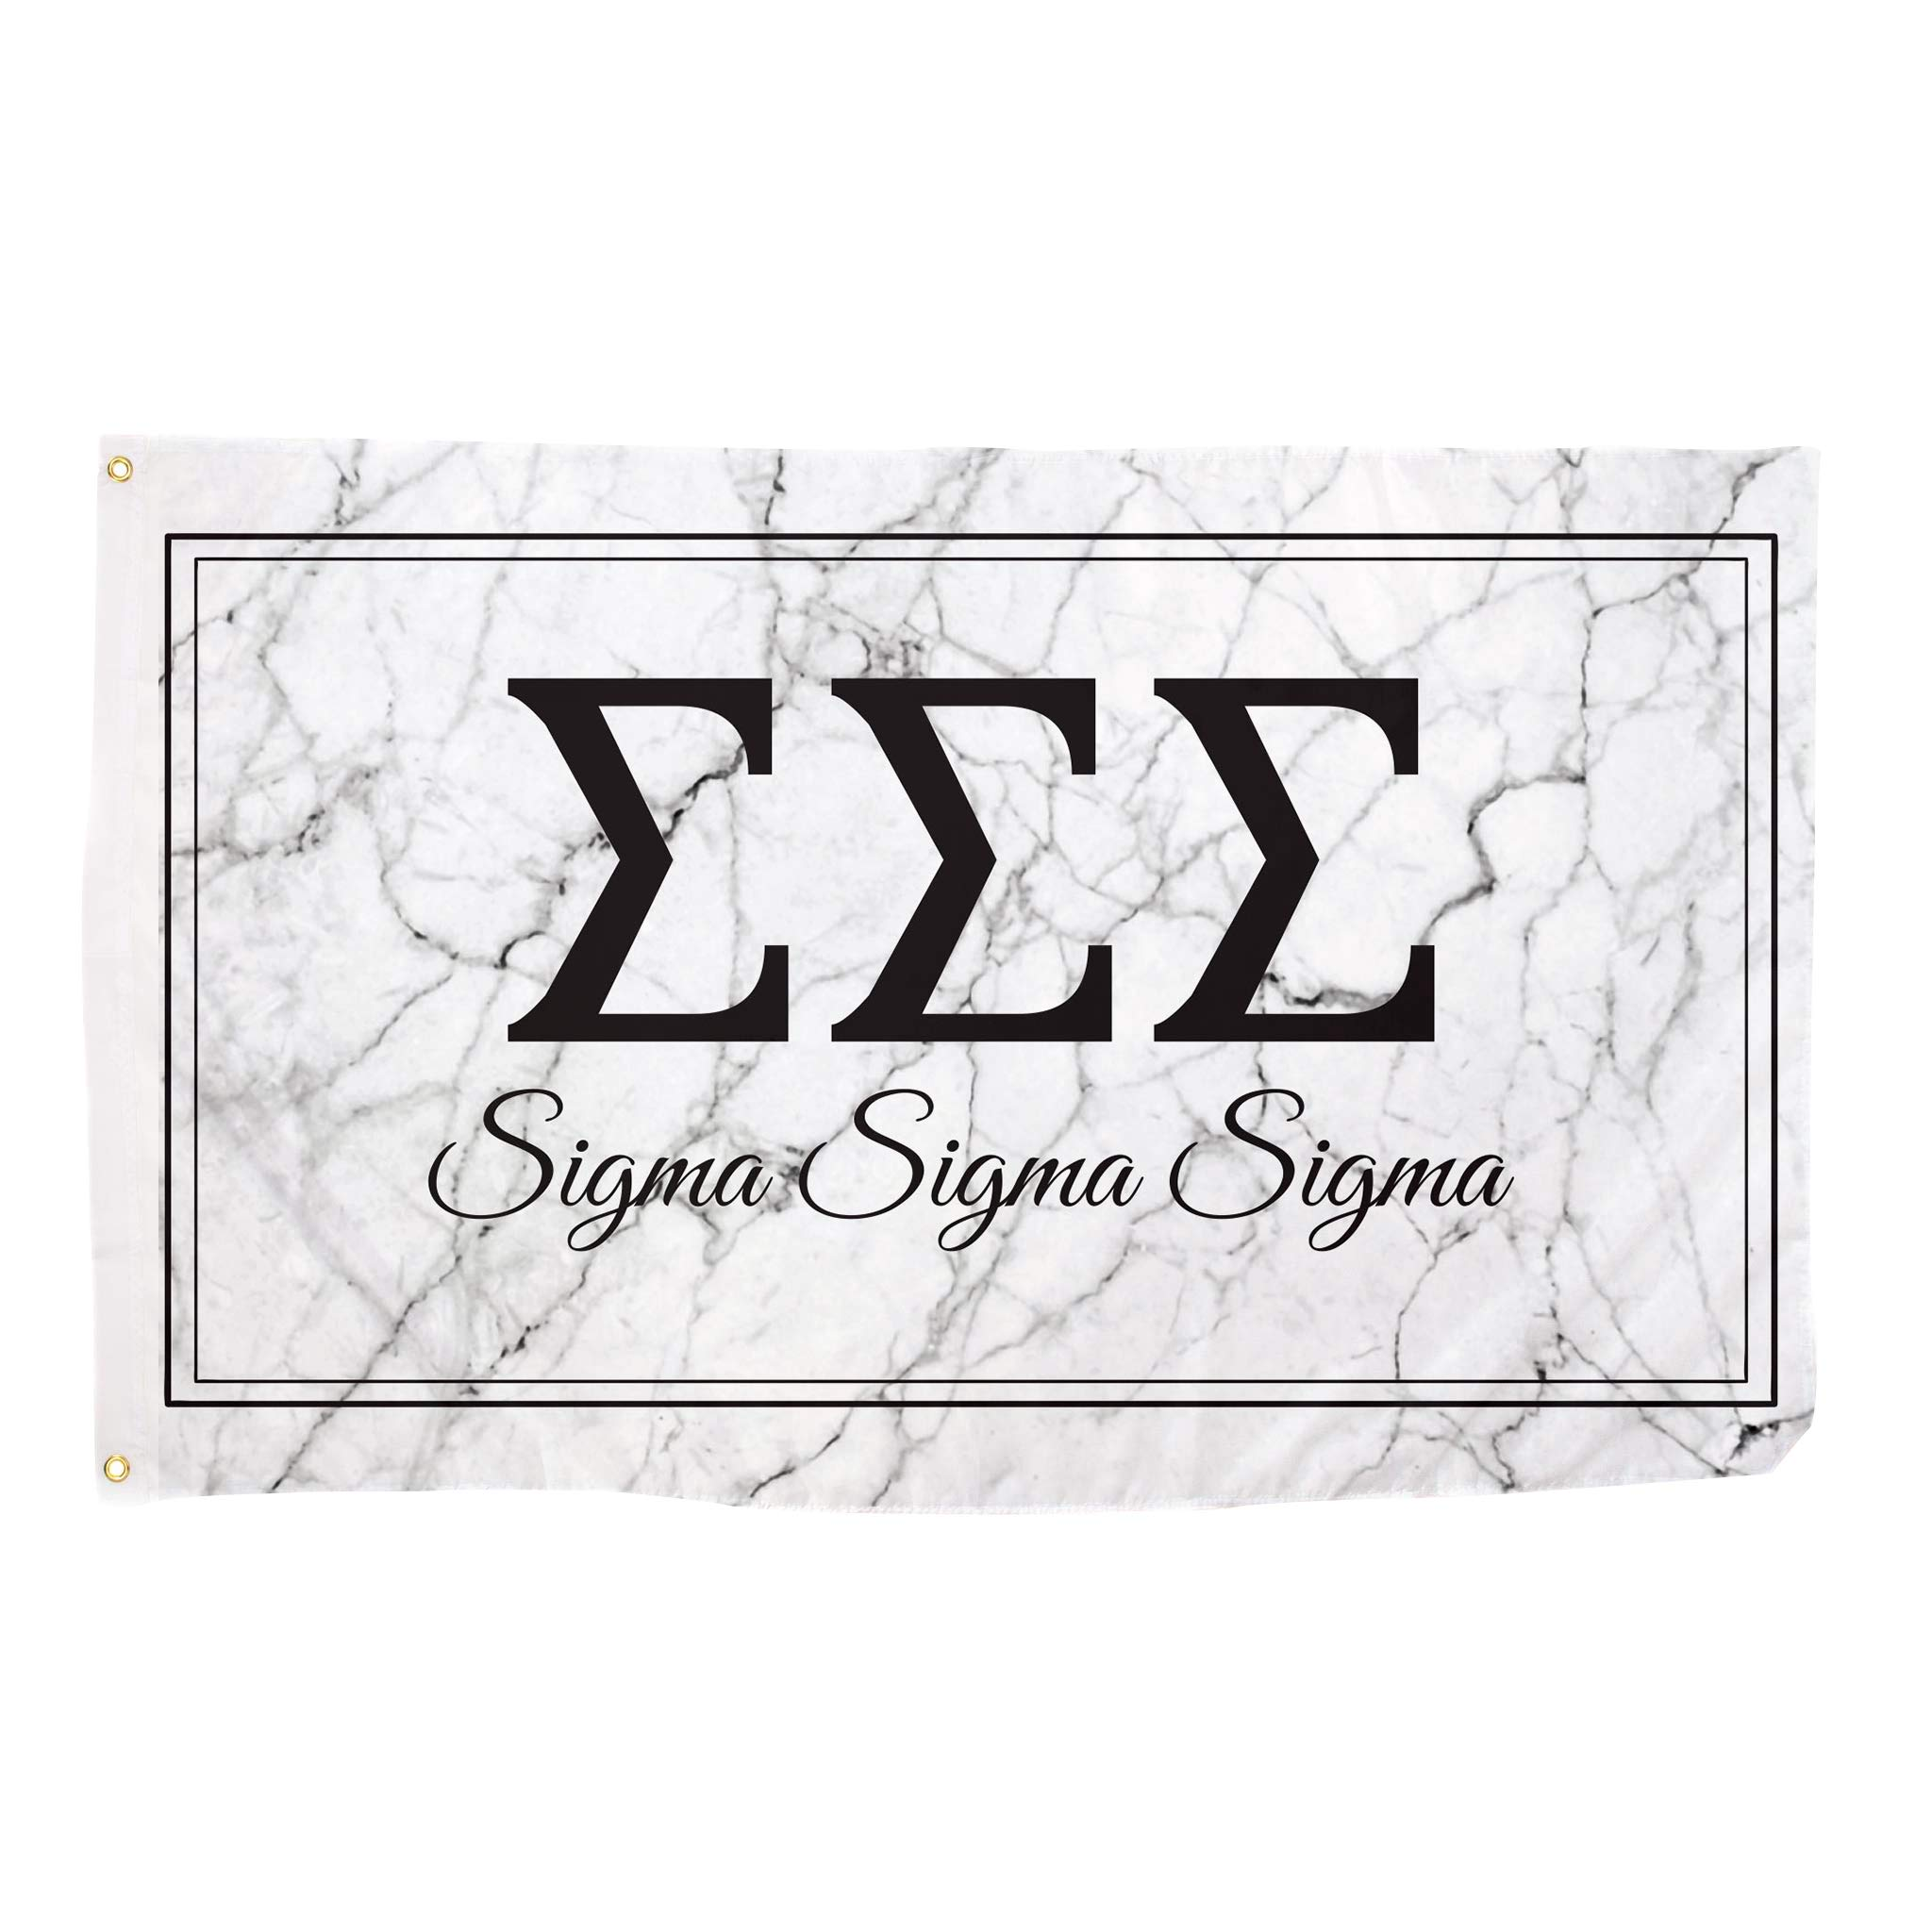 Sigma Sigma Sigma Marble Box Letter Sorority Flag Banner 3 x 5 Sign Decor Tri-Sig - Marble Box by Desert Cactus